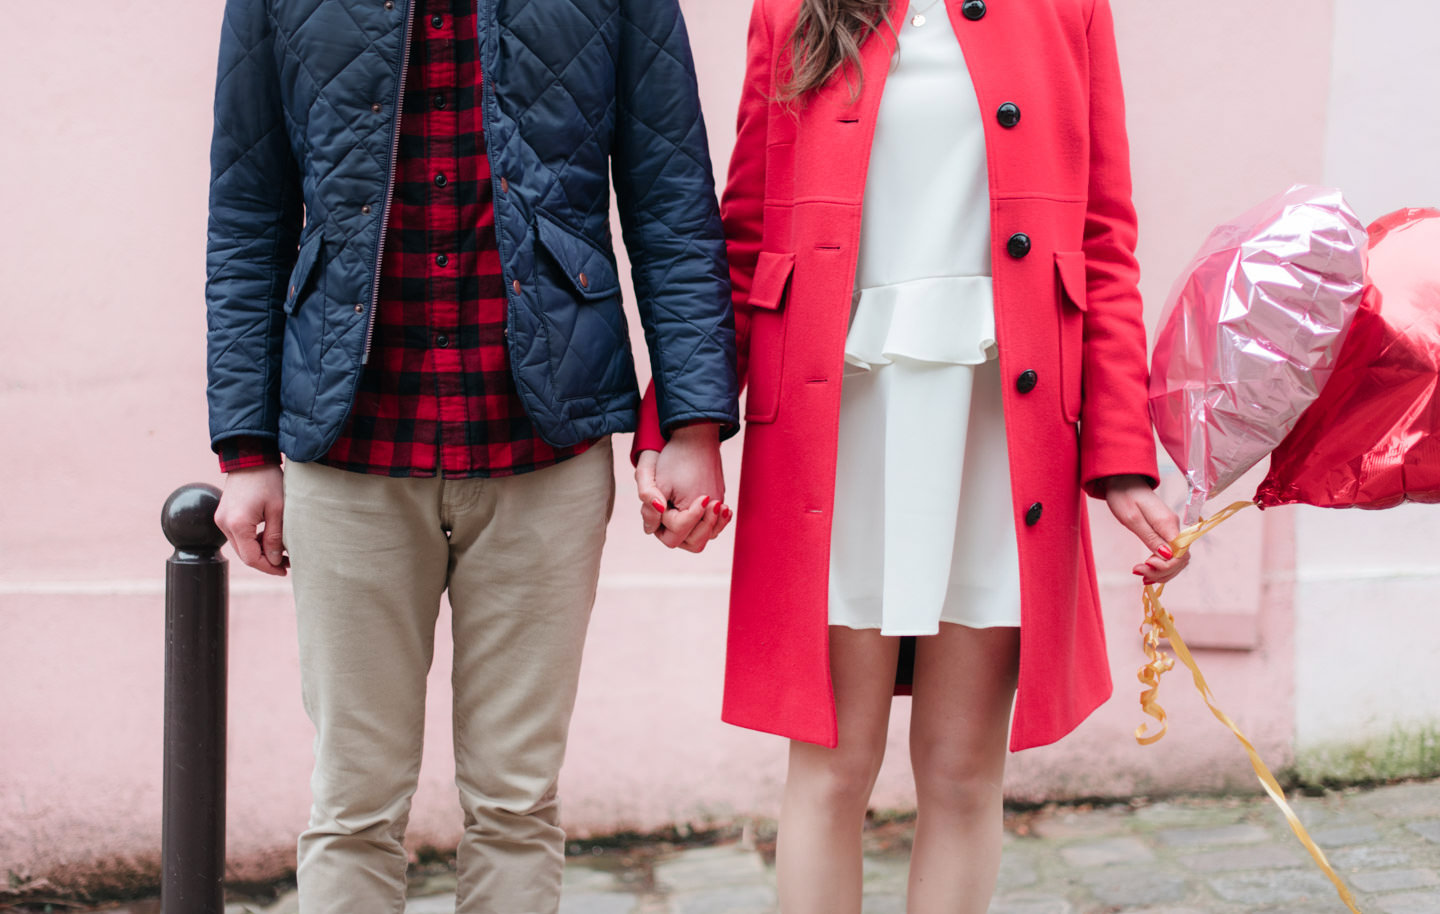 Blog-mode-and-The-City-Lifestyle-En-Duo